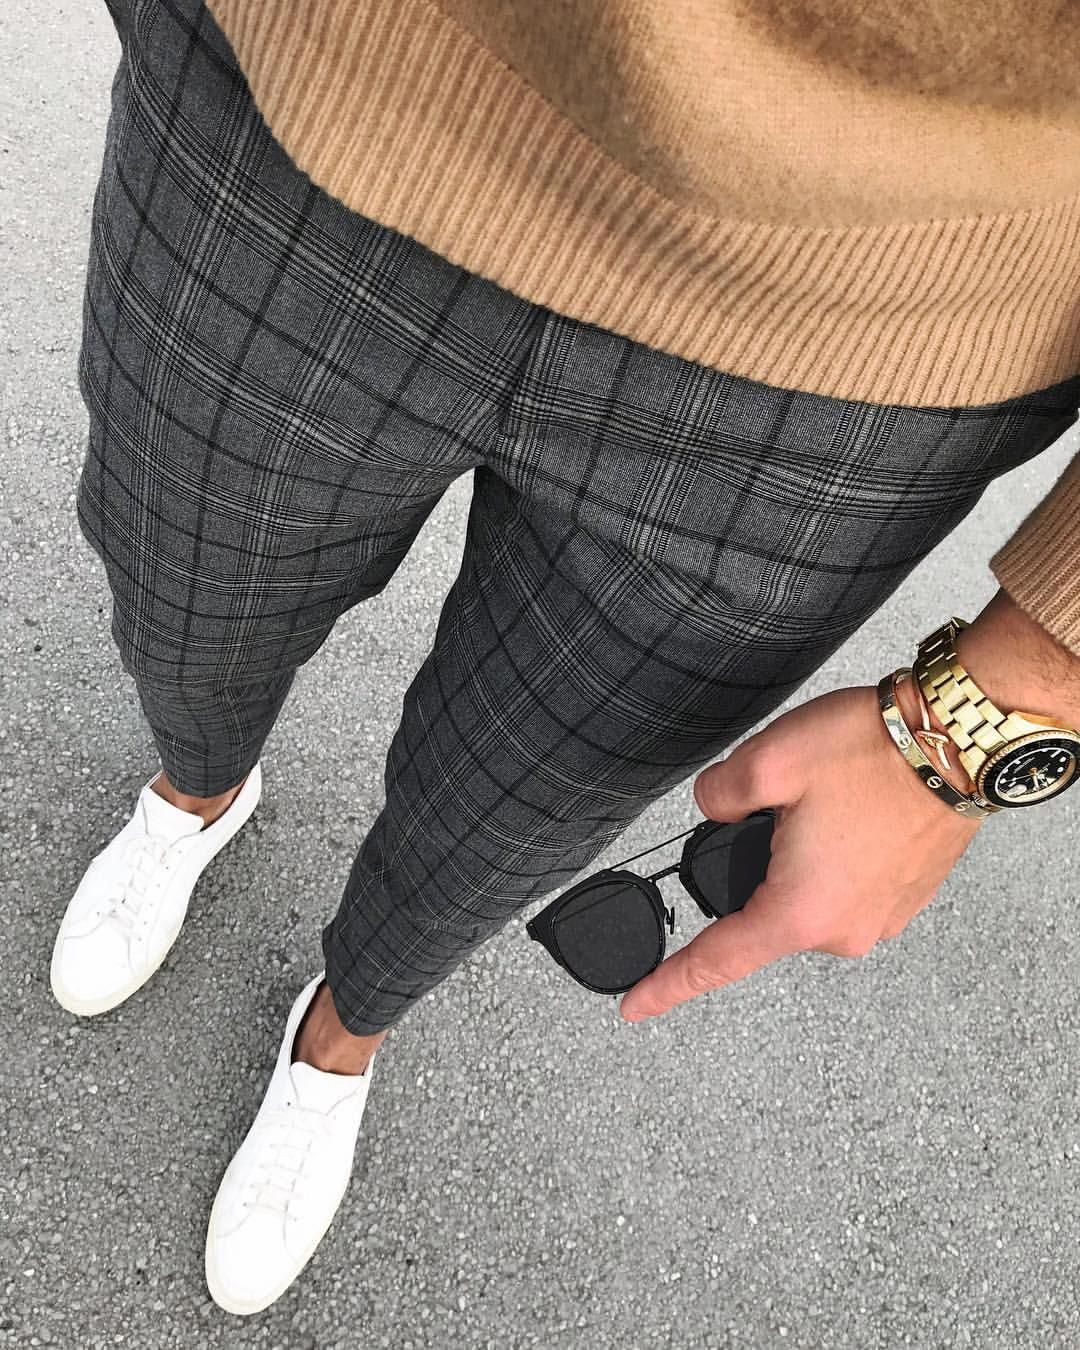 10 pinterest mens trends set to blow up in 2019